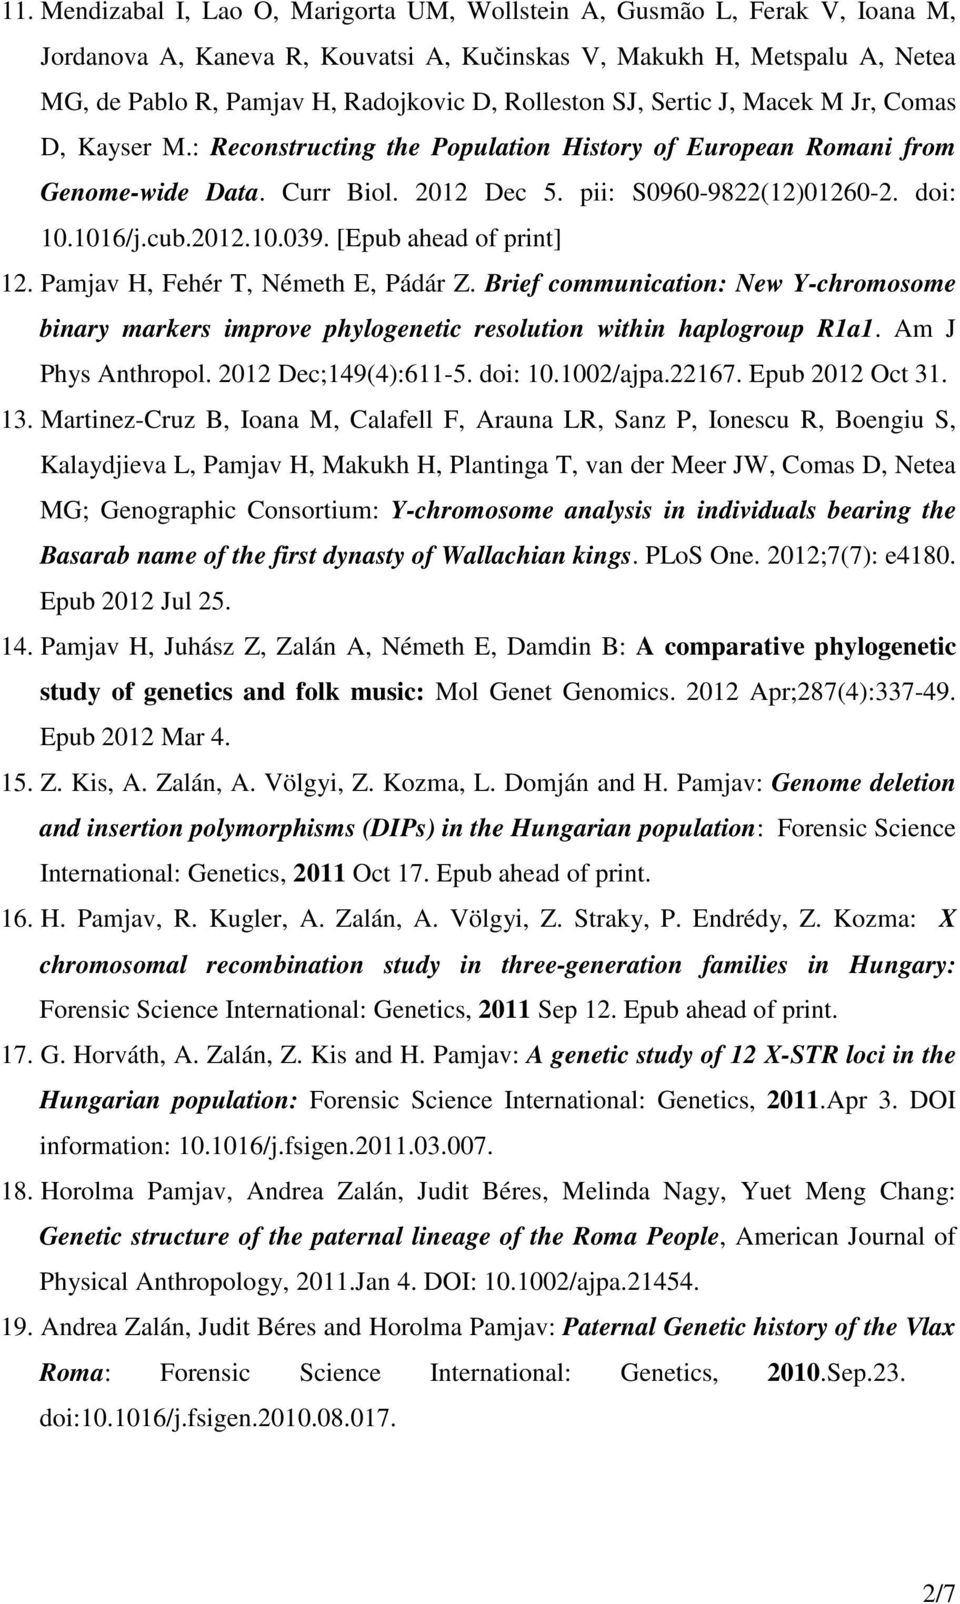 1016/j.cub.2012.10.039. [Epub ahead of print] 12. Pamjav H, Fehér T, Németh E, Pádár Z. Brief communication: New Y-chromosome binary markers improve phylogenetic resolution within haplogroup R1a1.